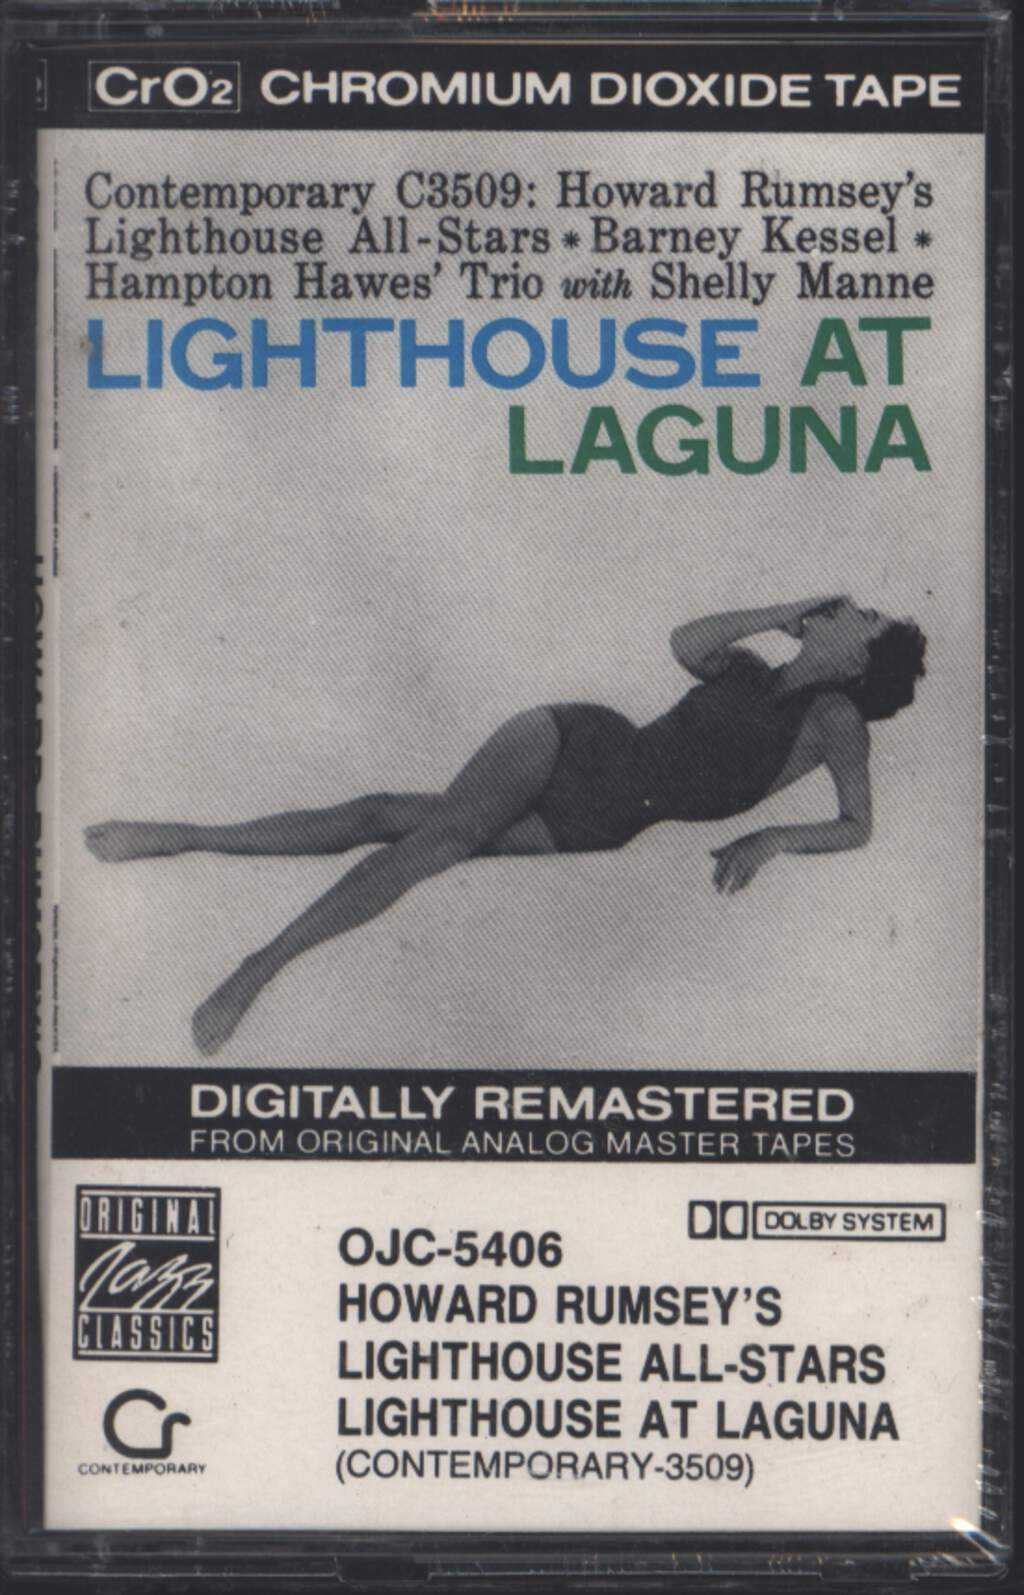 Howard Rumsey's Lighthouse All-Stars: Lighthouse At Laguna, Tape